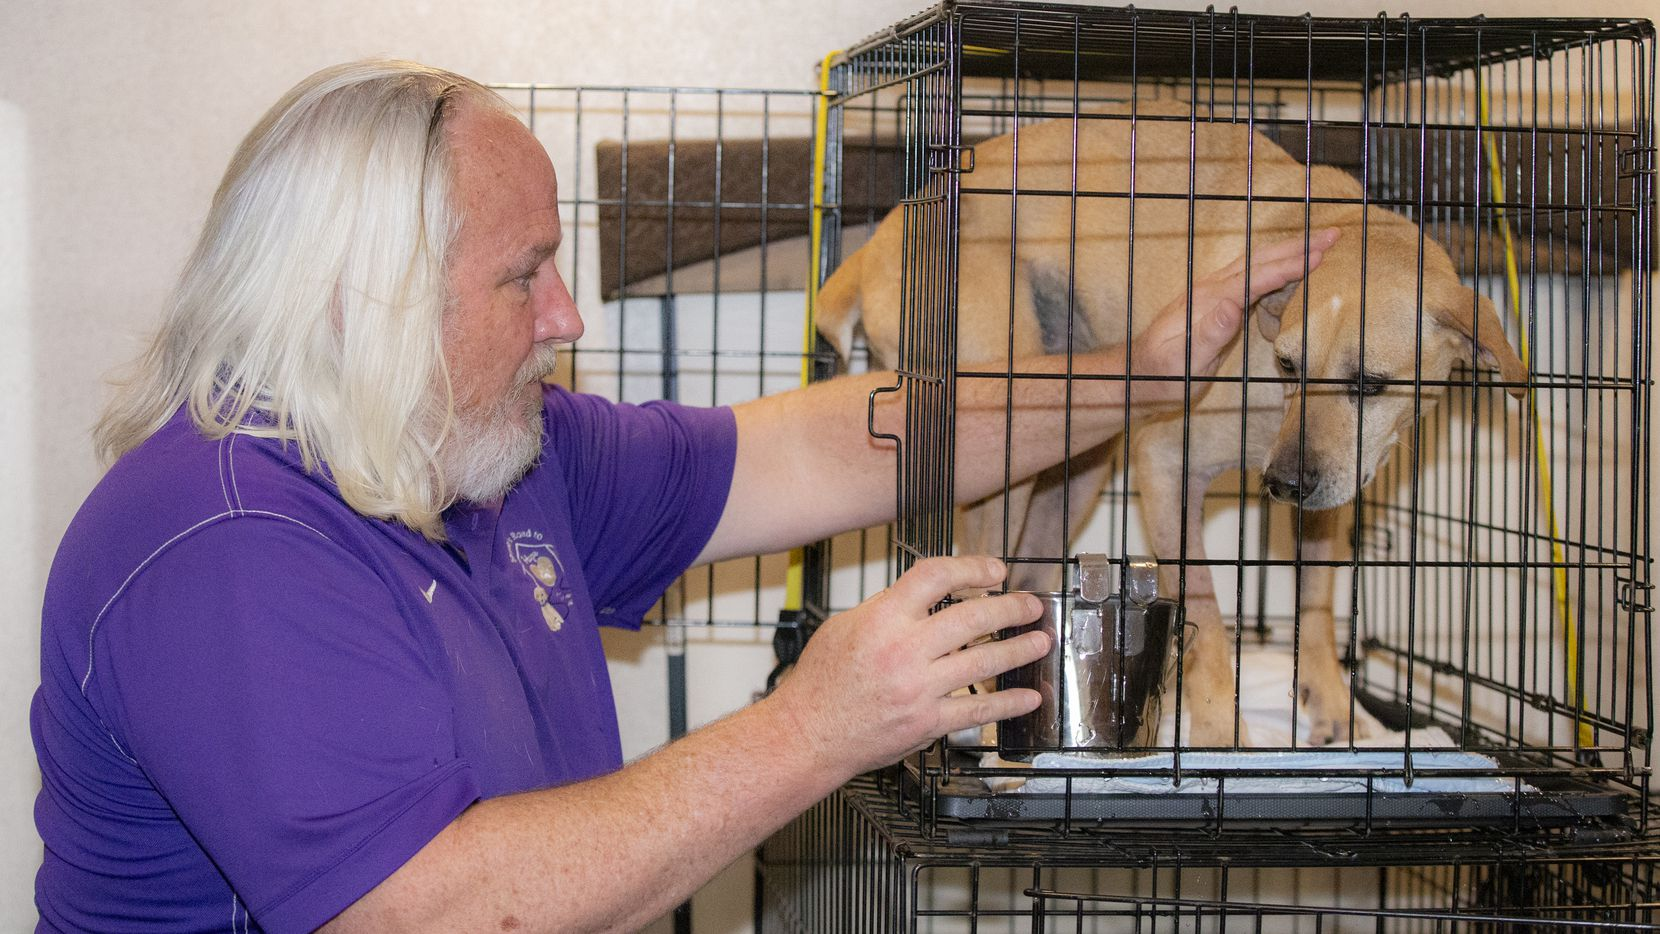 James Harbor, president of Shiloh's Road to Hope, places a rescue dog in a cage for a trip to Illinois and Wisconsin from the Wise County Animal Shelter in Decatur.